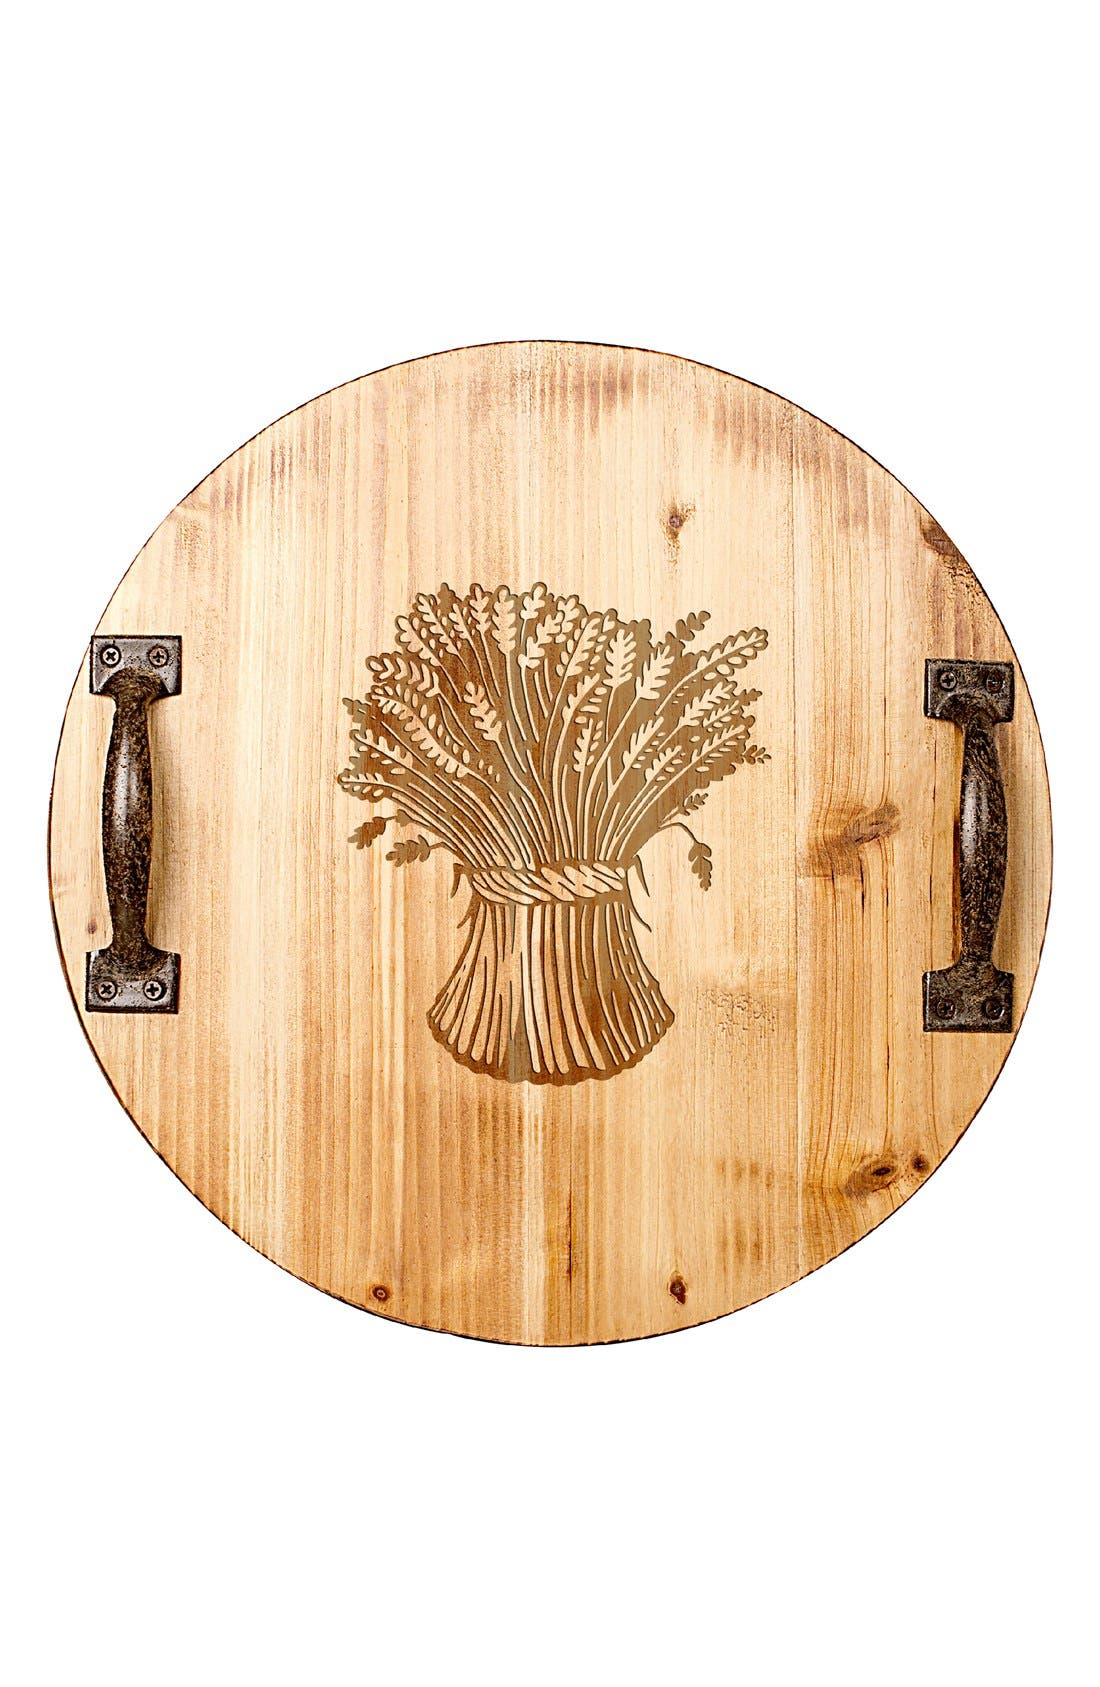 'Wheat Stalk' Rustic Wooden Tray,                             Alternate thumbnail 2, color,